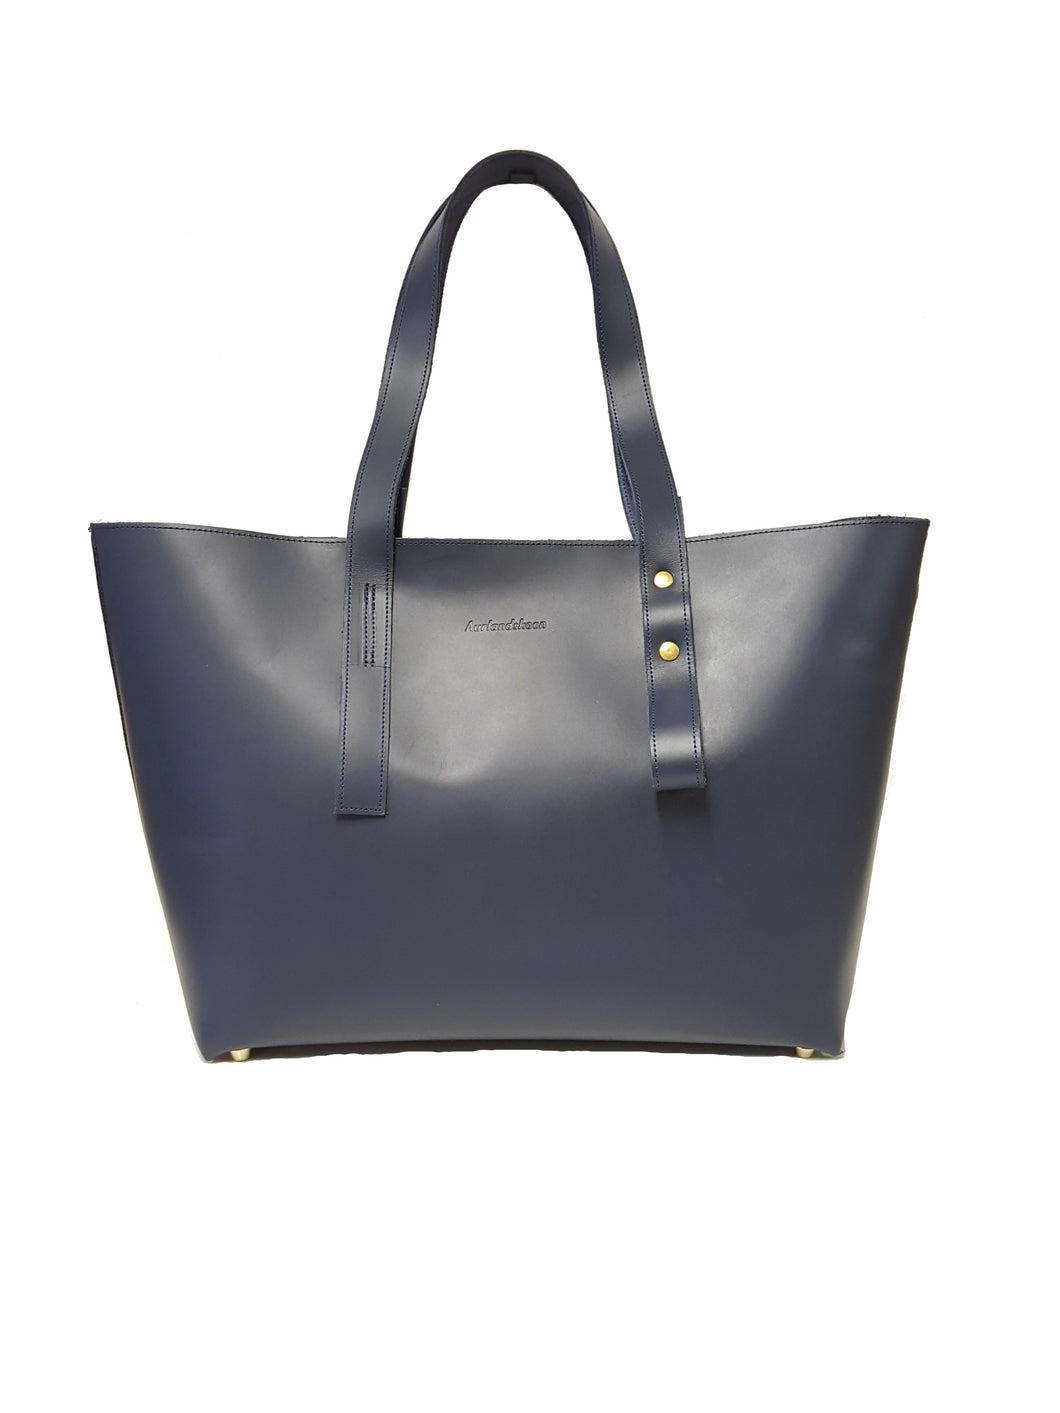 Aurlands Fjell Tote Bag navy